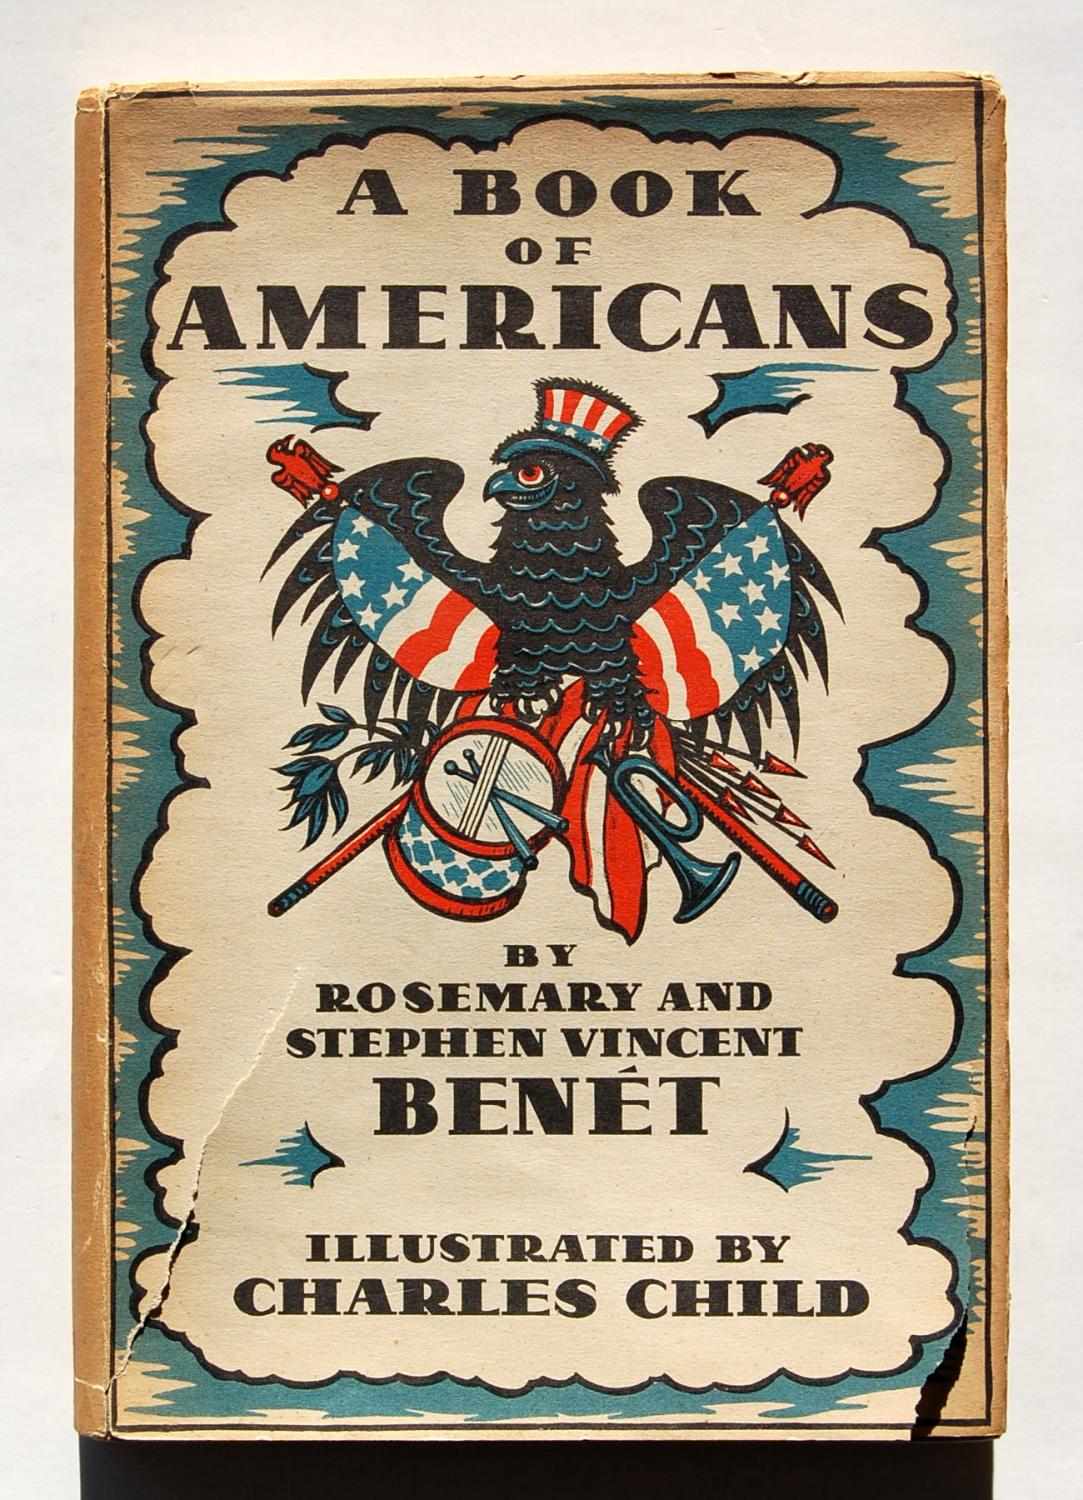 book of Americans by the Benets